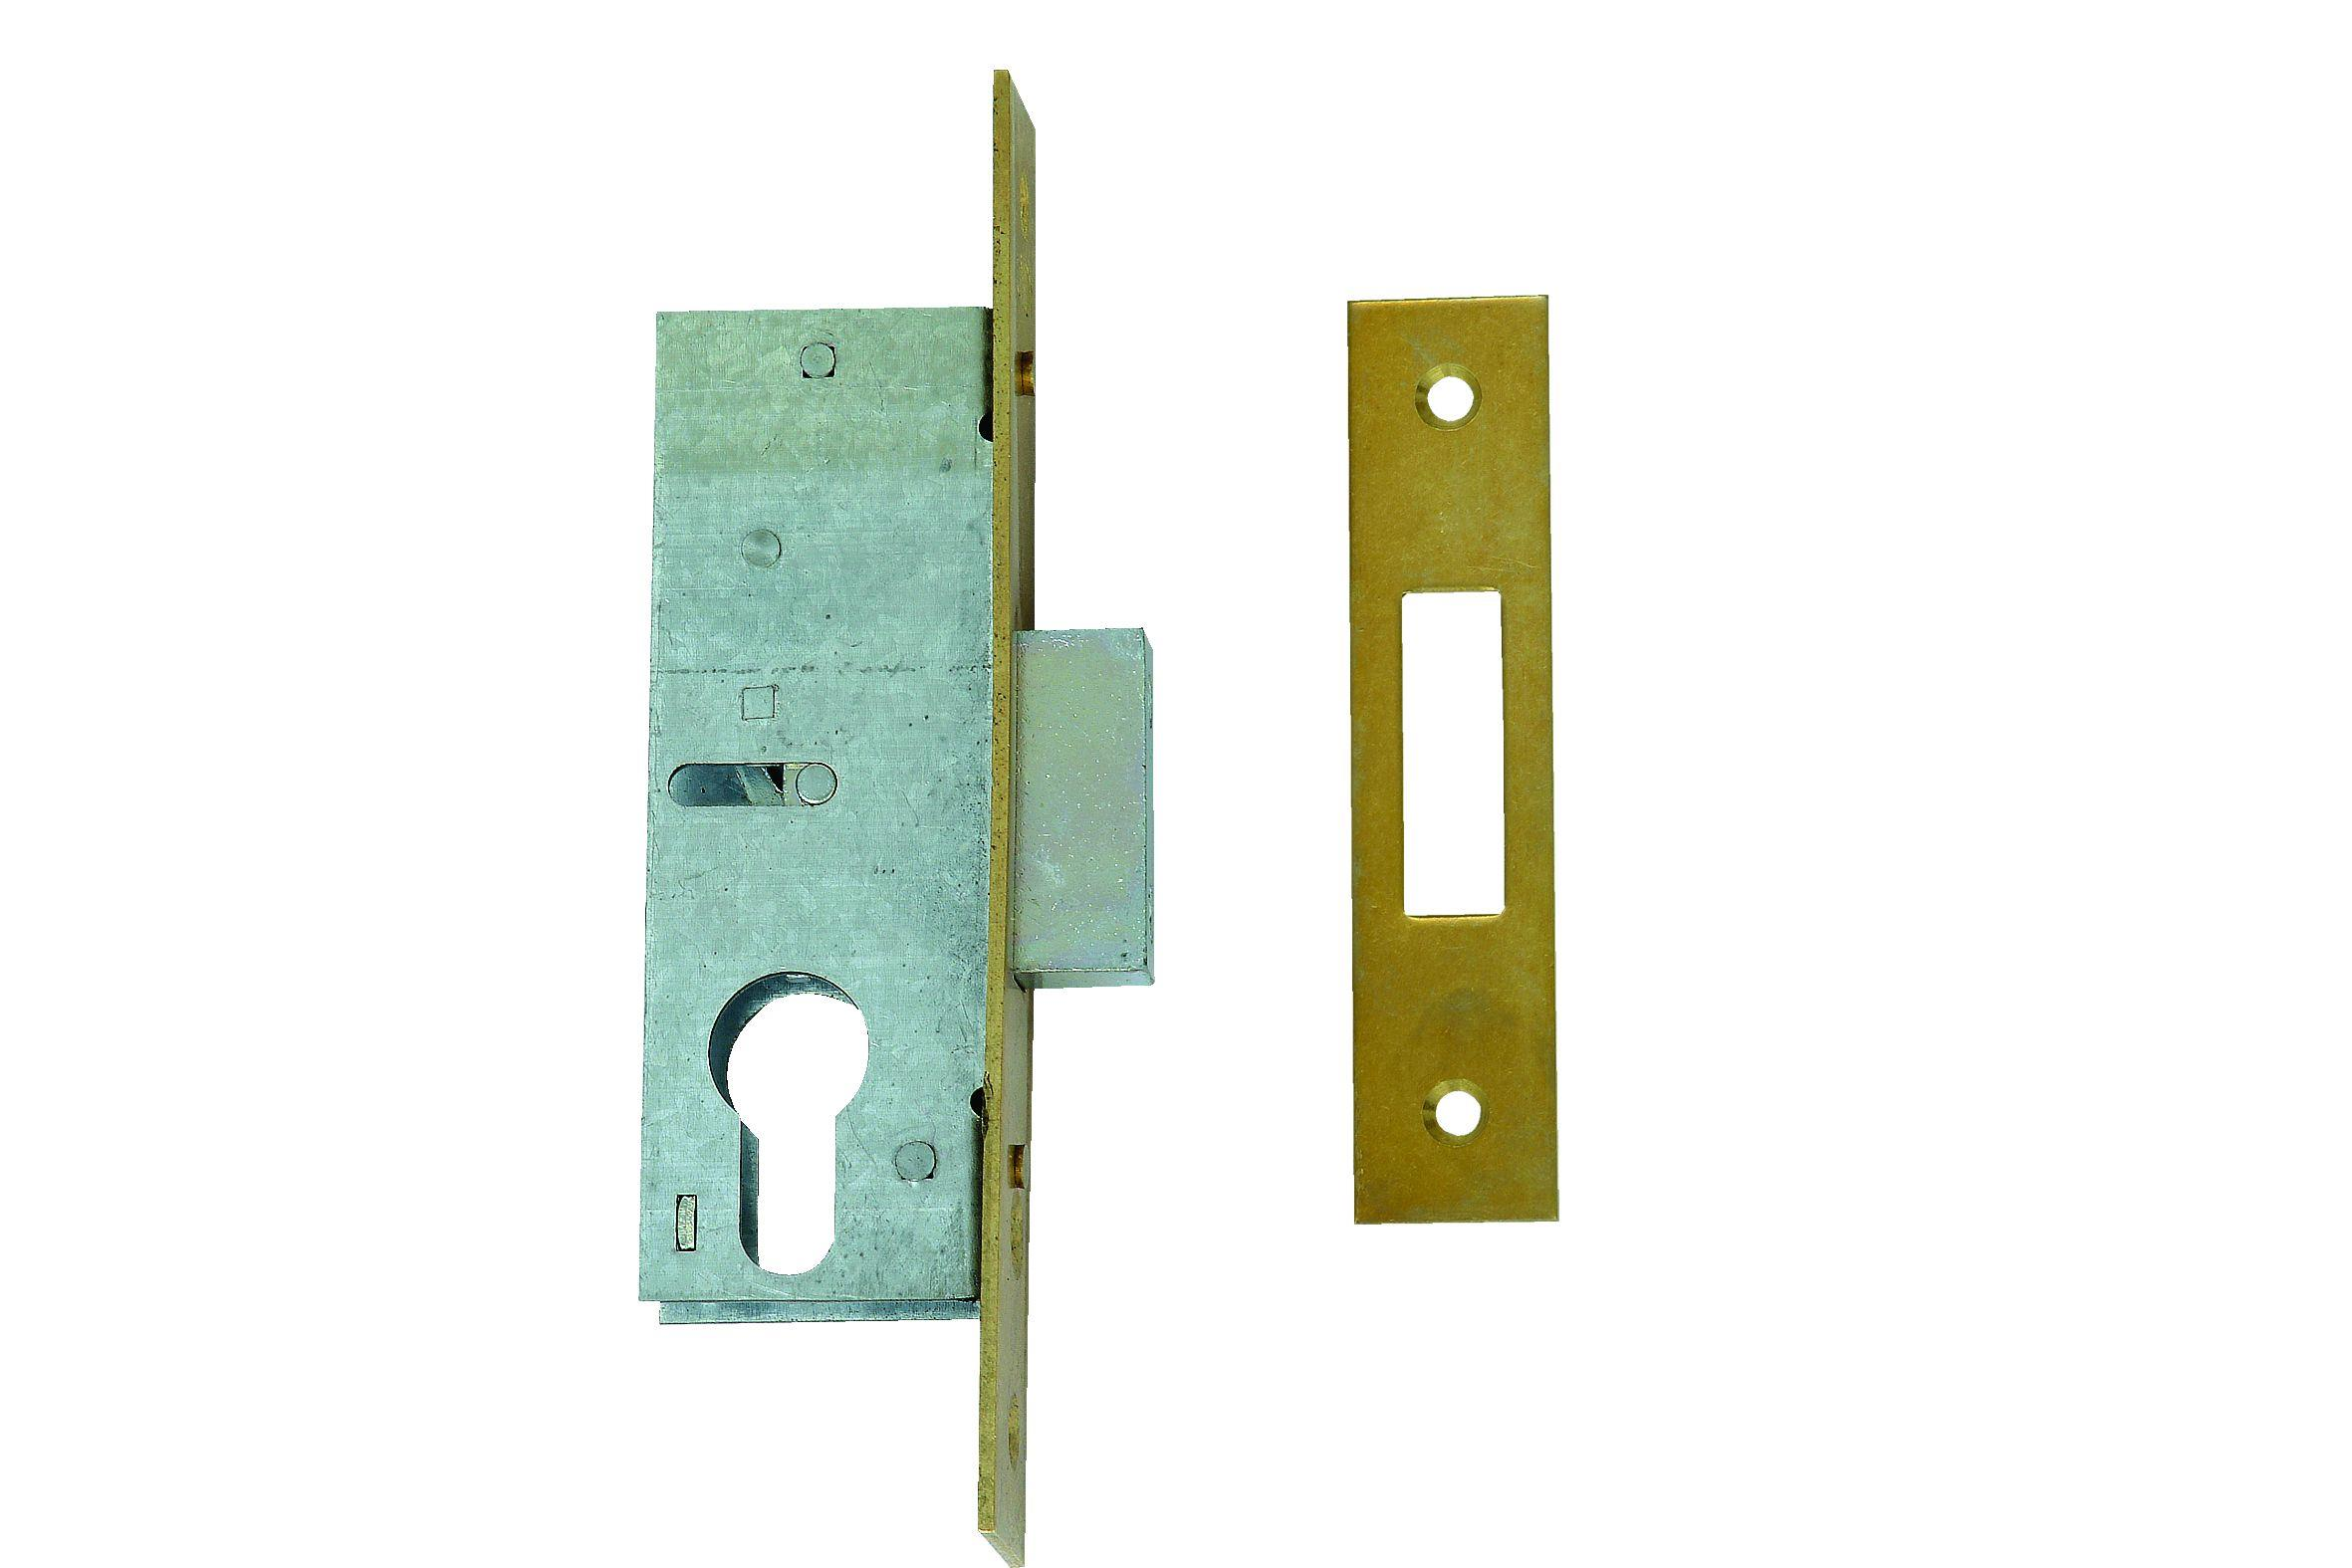 L-21315-40 - Narrow Stile Euro Profile Cylinder Dead Lock Case